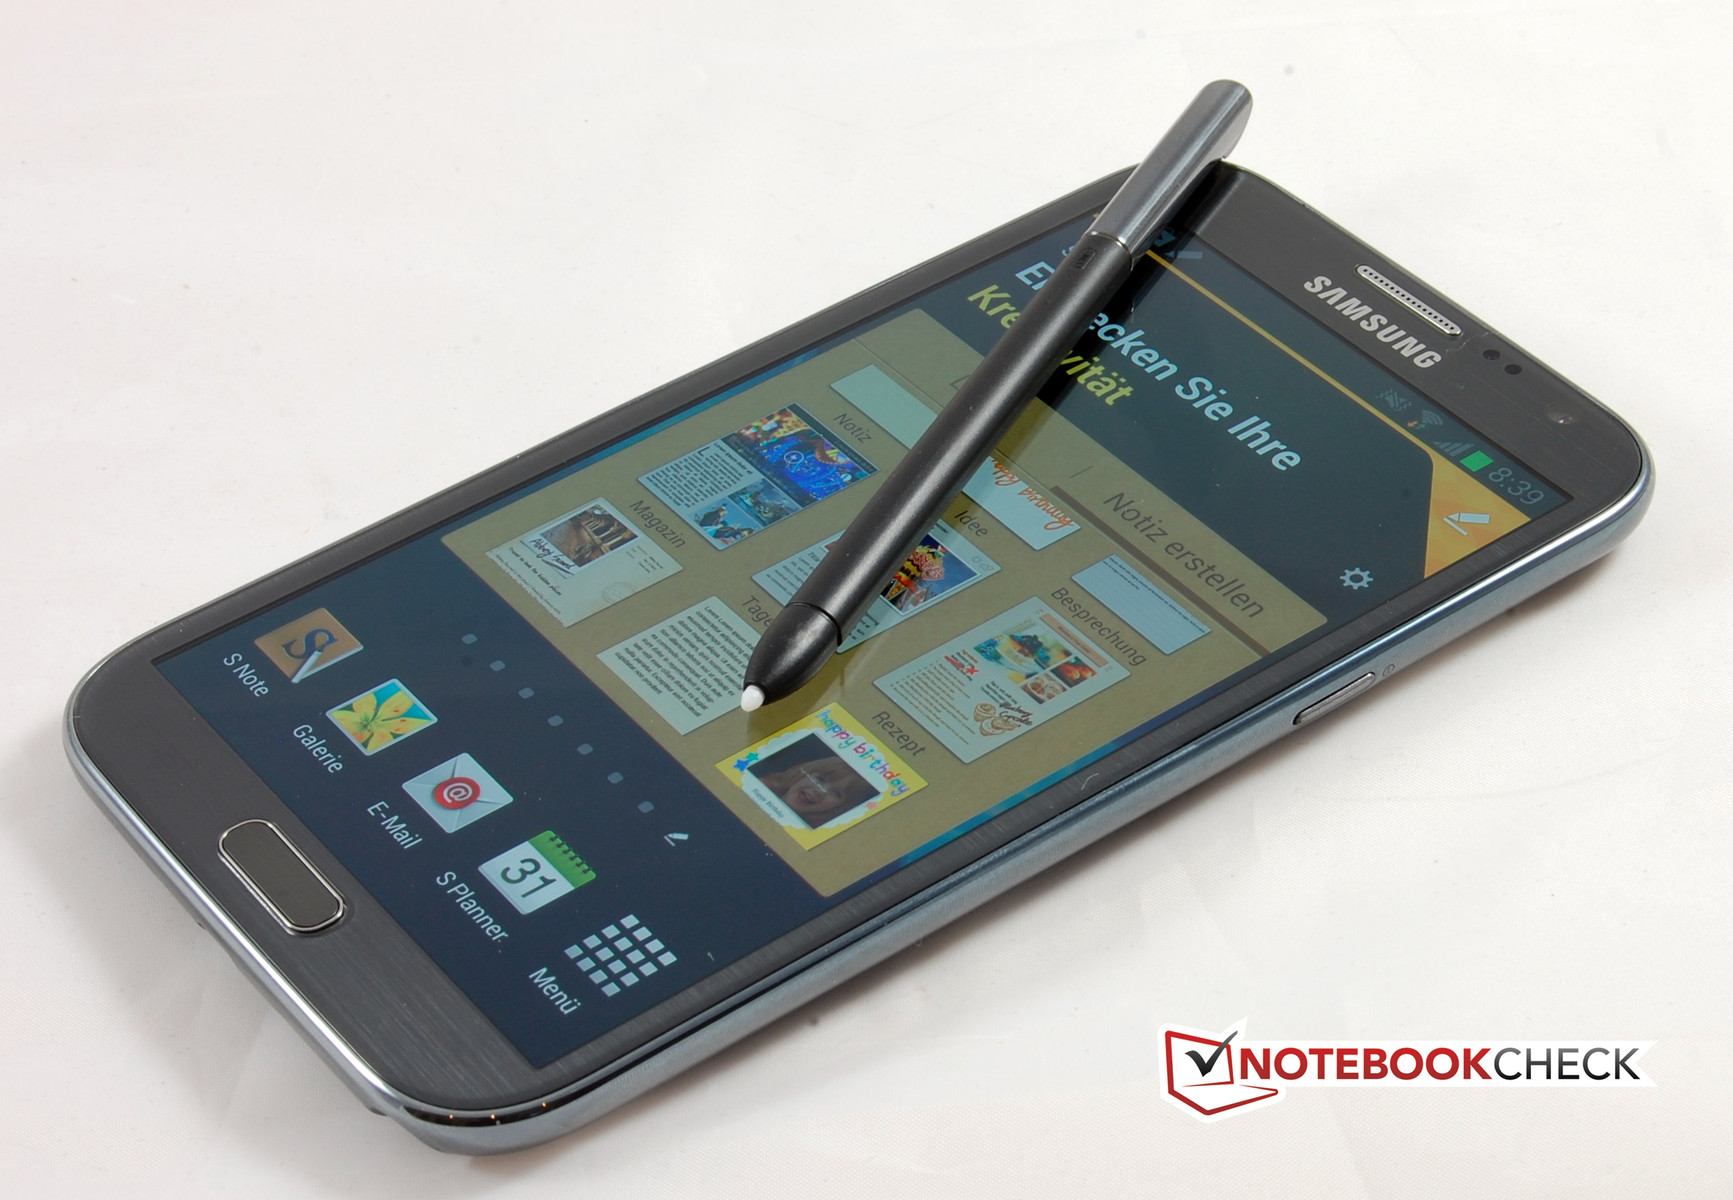 Review Samsung Galaxy Note Ii Gt N7100 Smartphone Notebookcheck Circuit Board 2 Best Durable Case Cell Phones The S Pen Works Perfectly